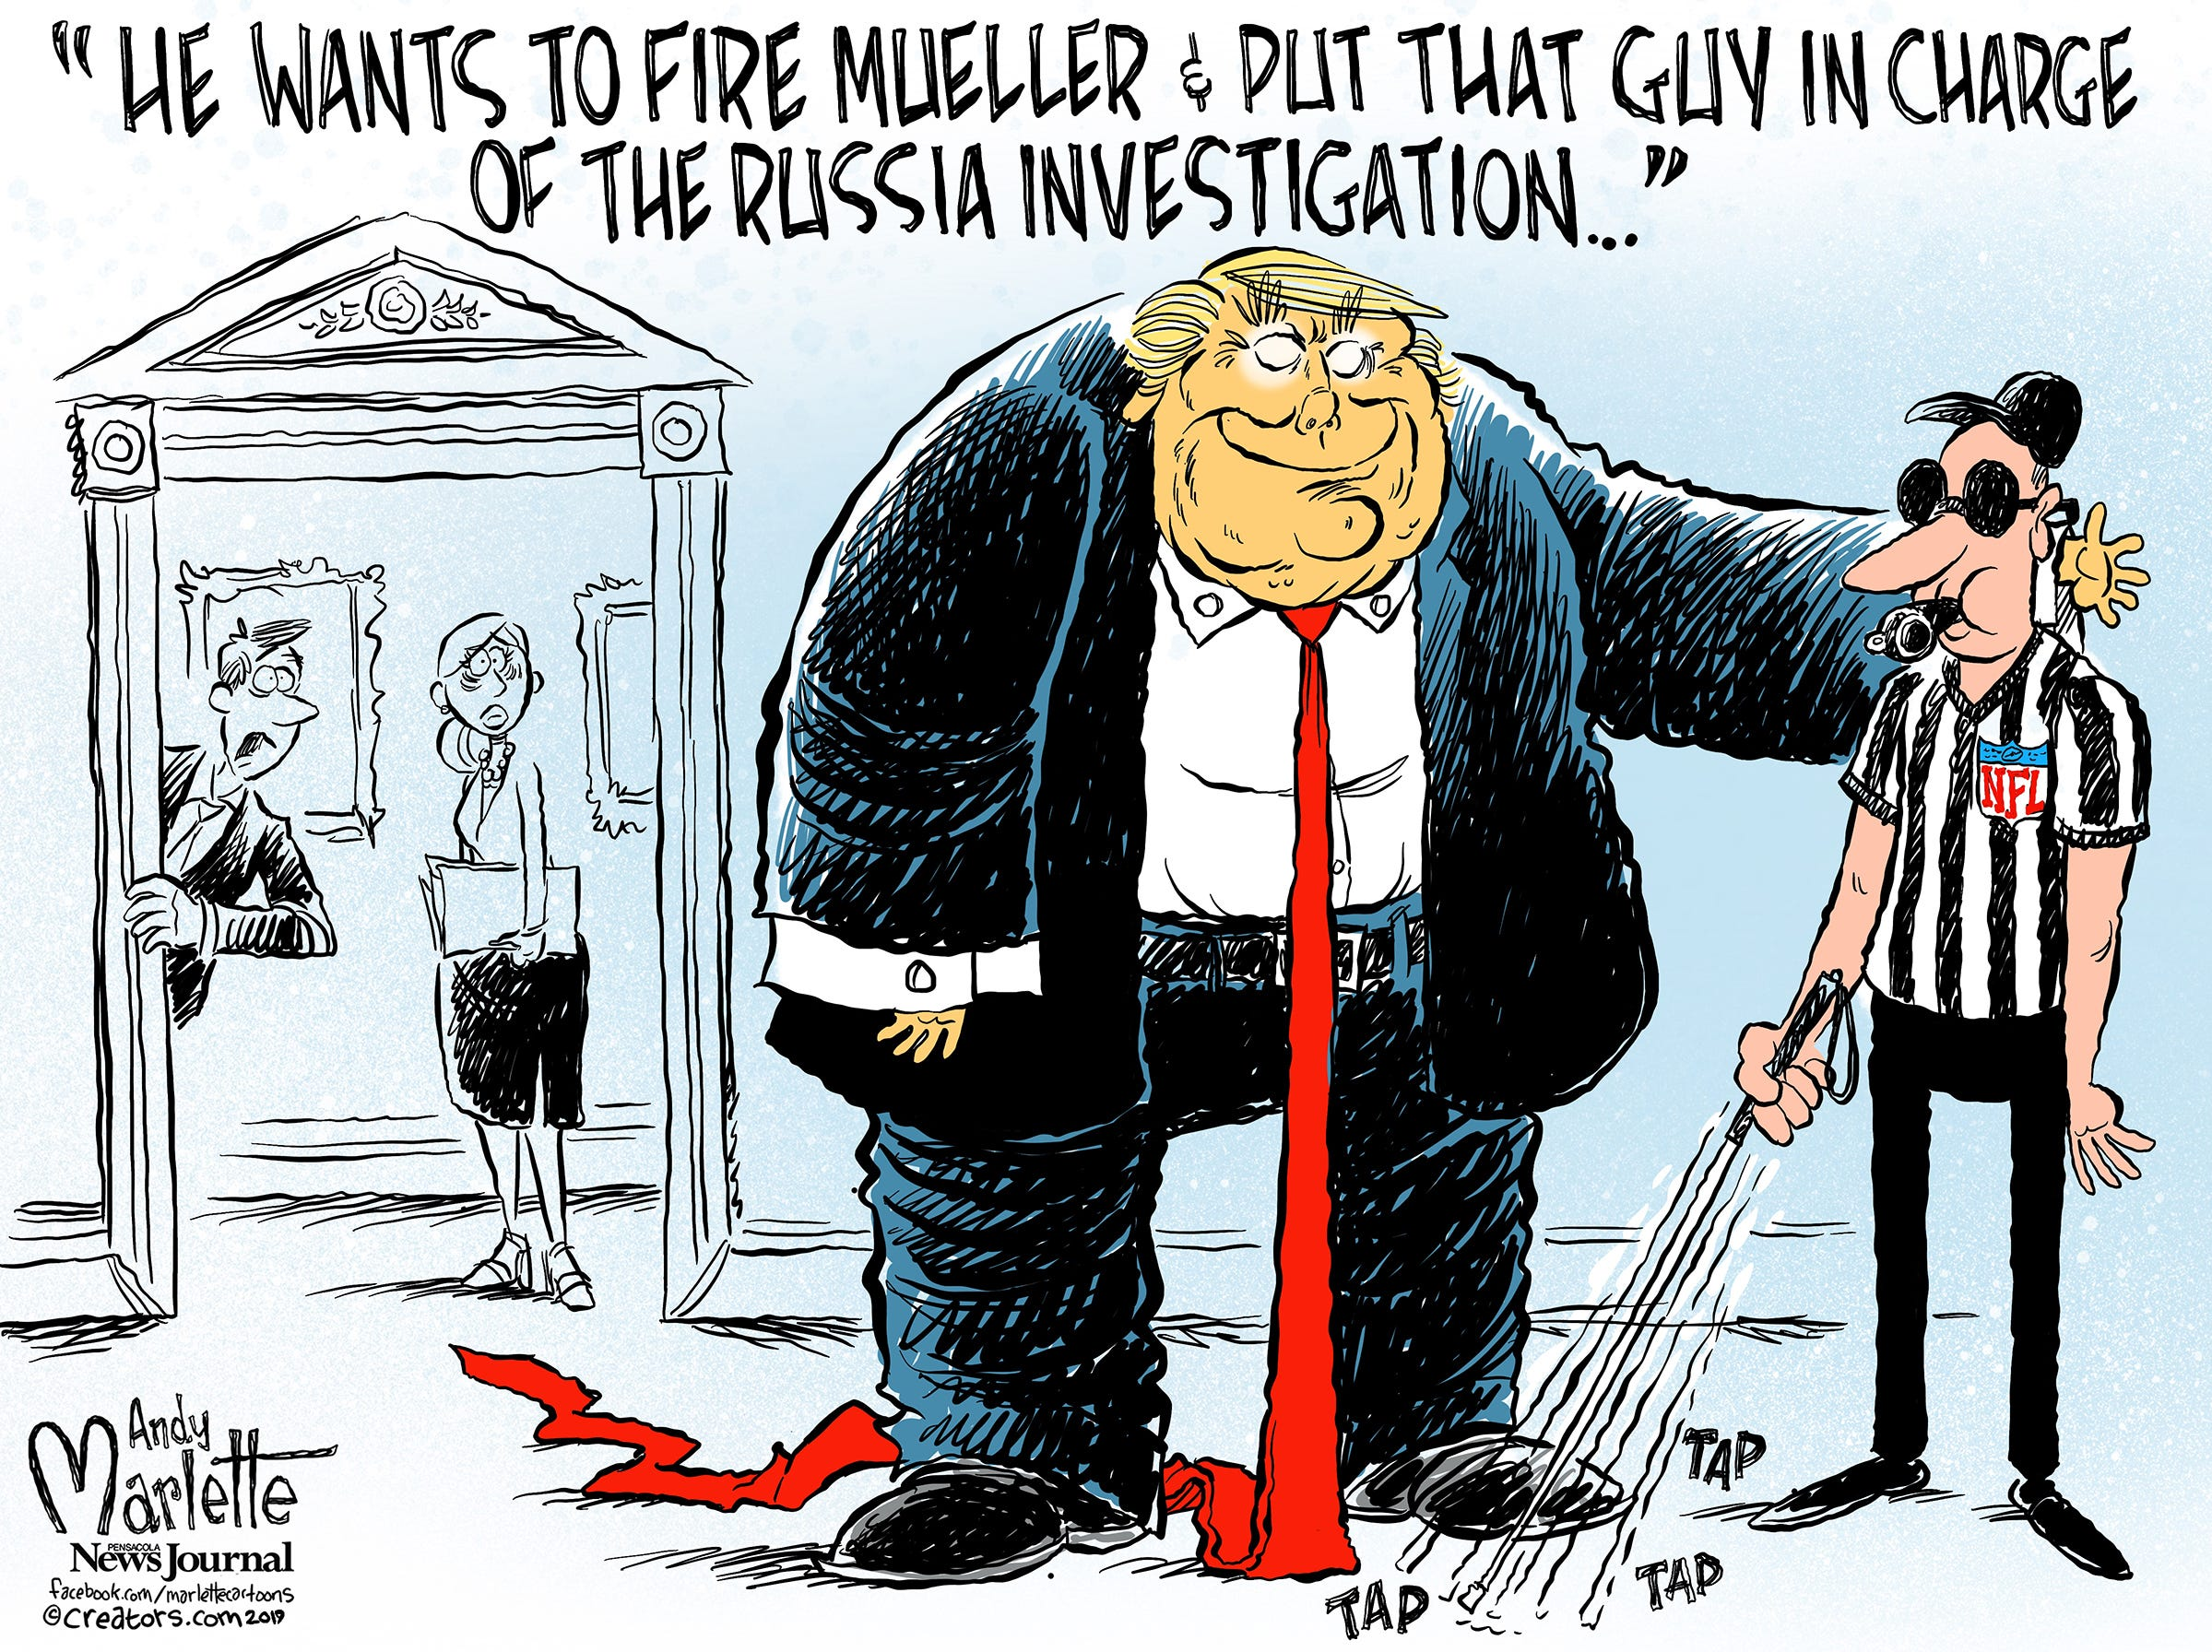 Marlette cartoons you love to hate!